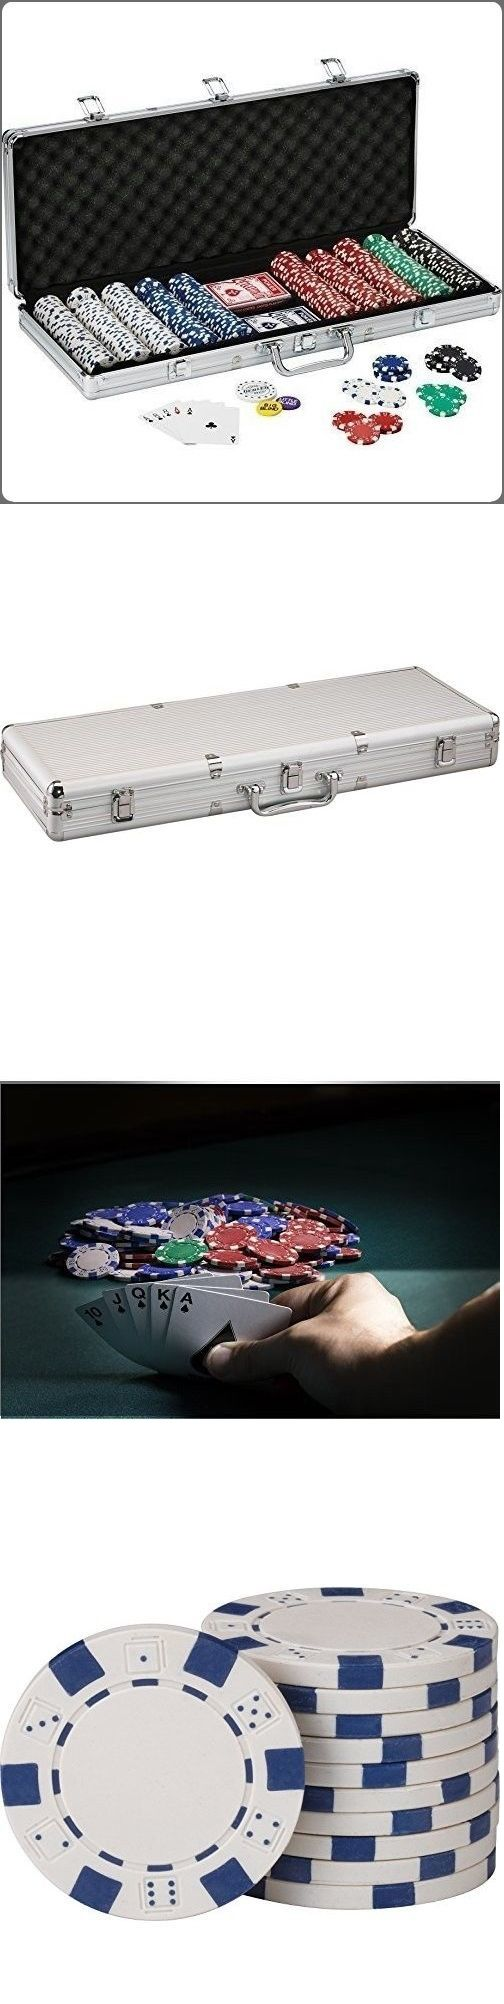 Poker Chips 166570: 500 Poker Striped Dice Chips Set Aluminum Lockable Case Complete Card Game Set -> BUY IT NOW ONLY: $59.85 on eBay!